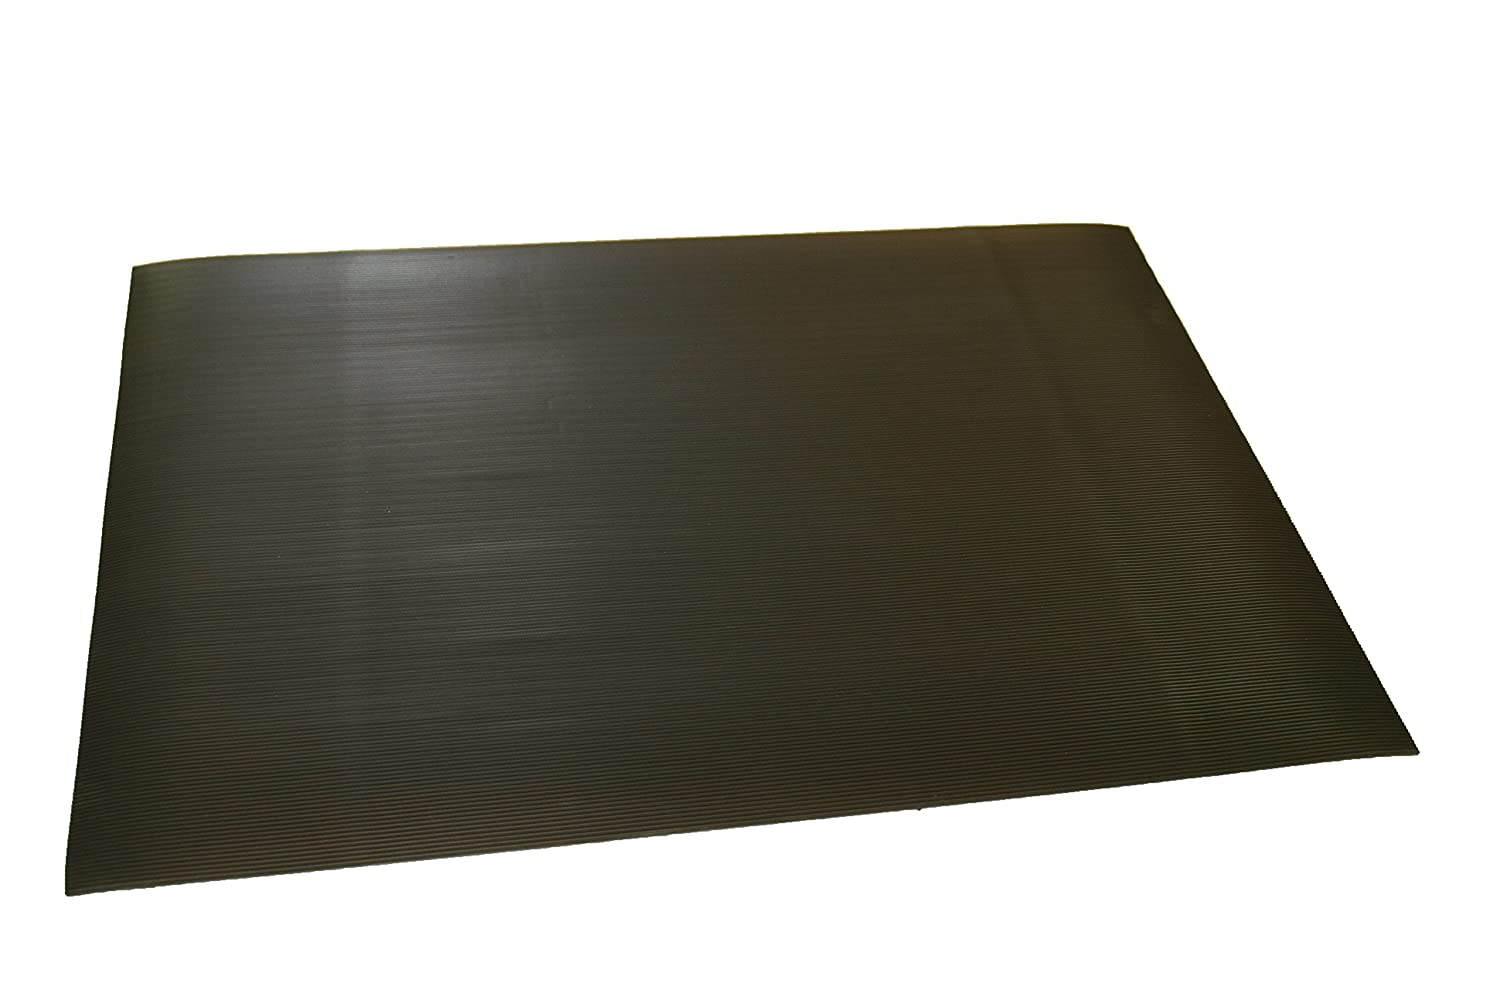 Ribber  Corrugated Rubber Runners Mat 2/' width 1//4 thick